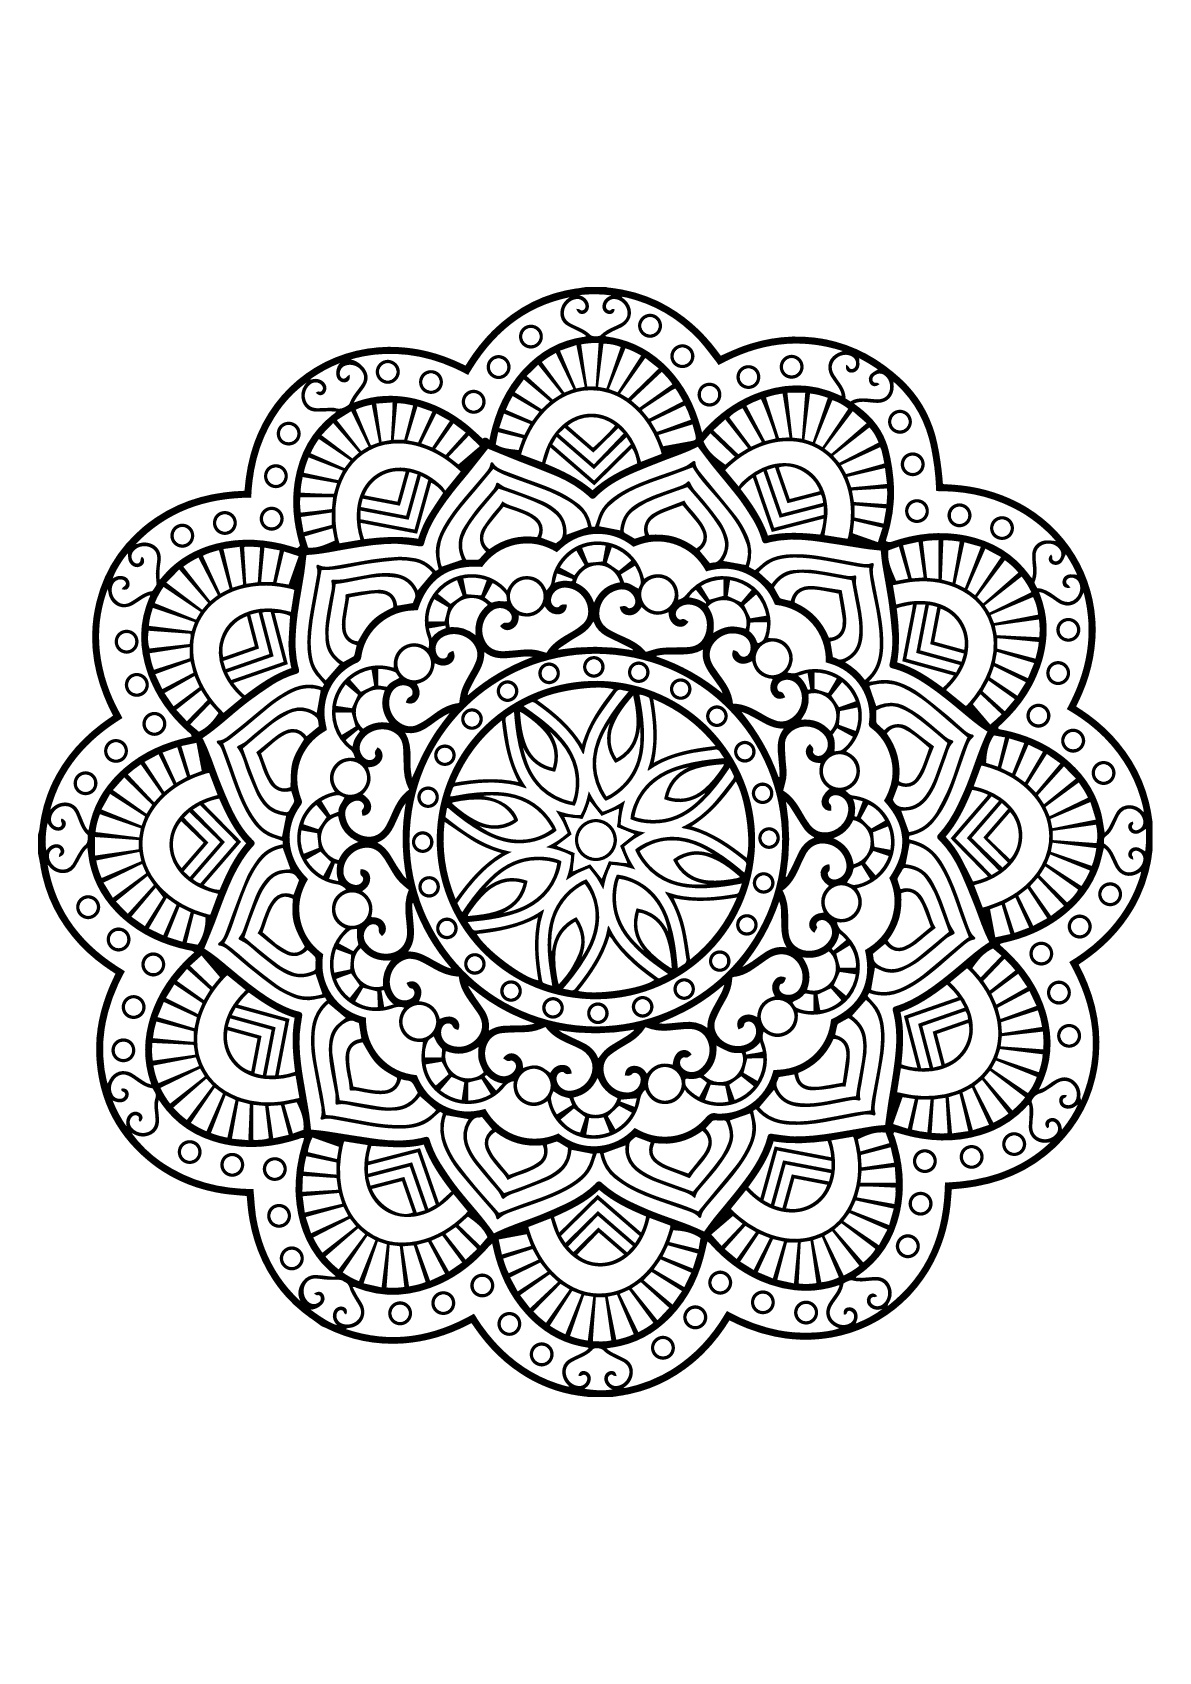 free mandala coloring pages for adults 1000 images about images to color on pinterest for pages mandala coloring free adults